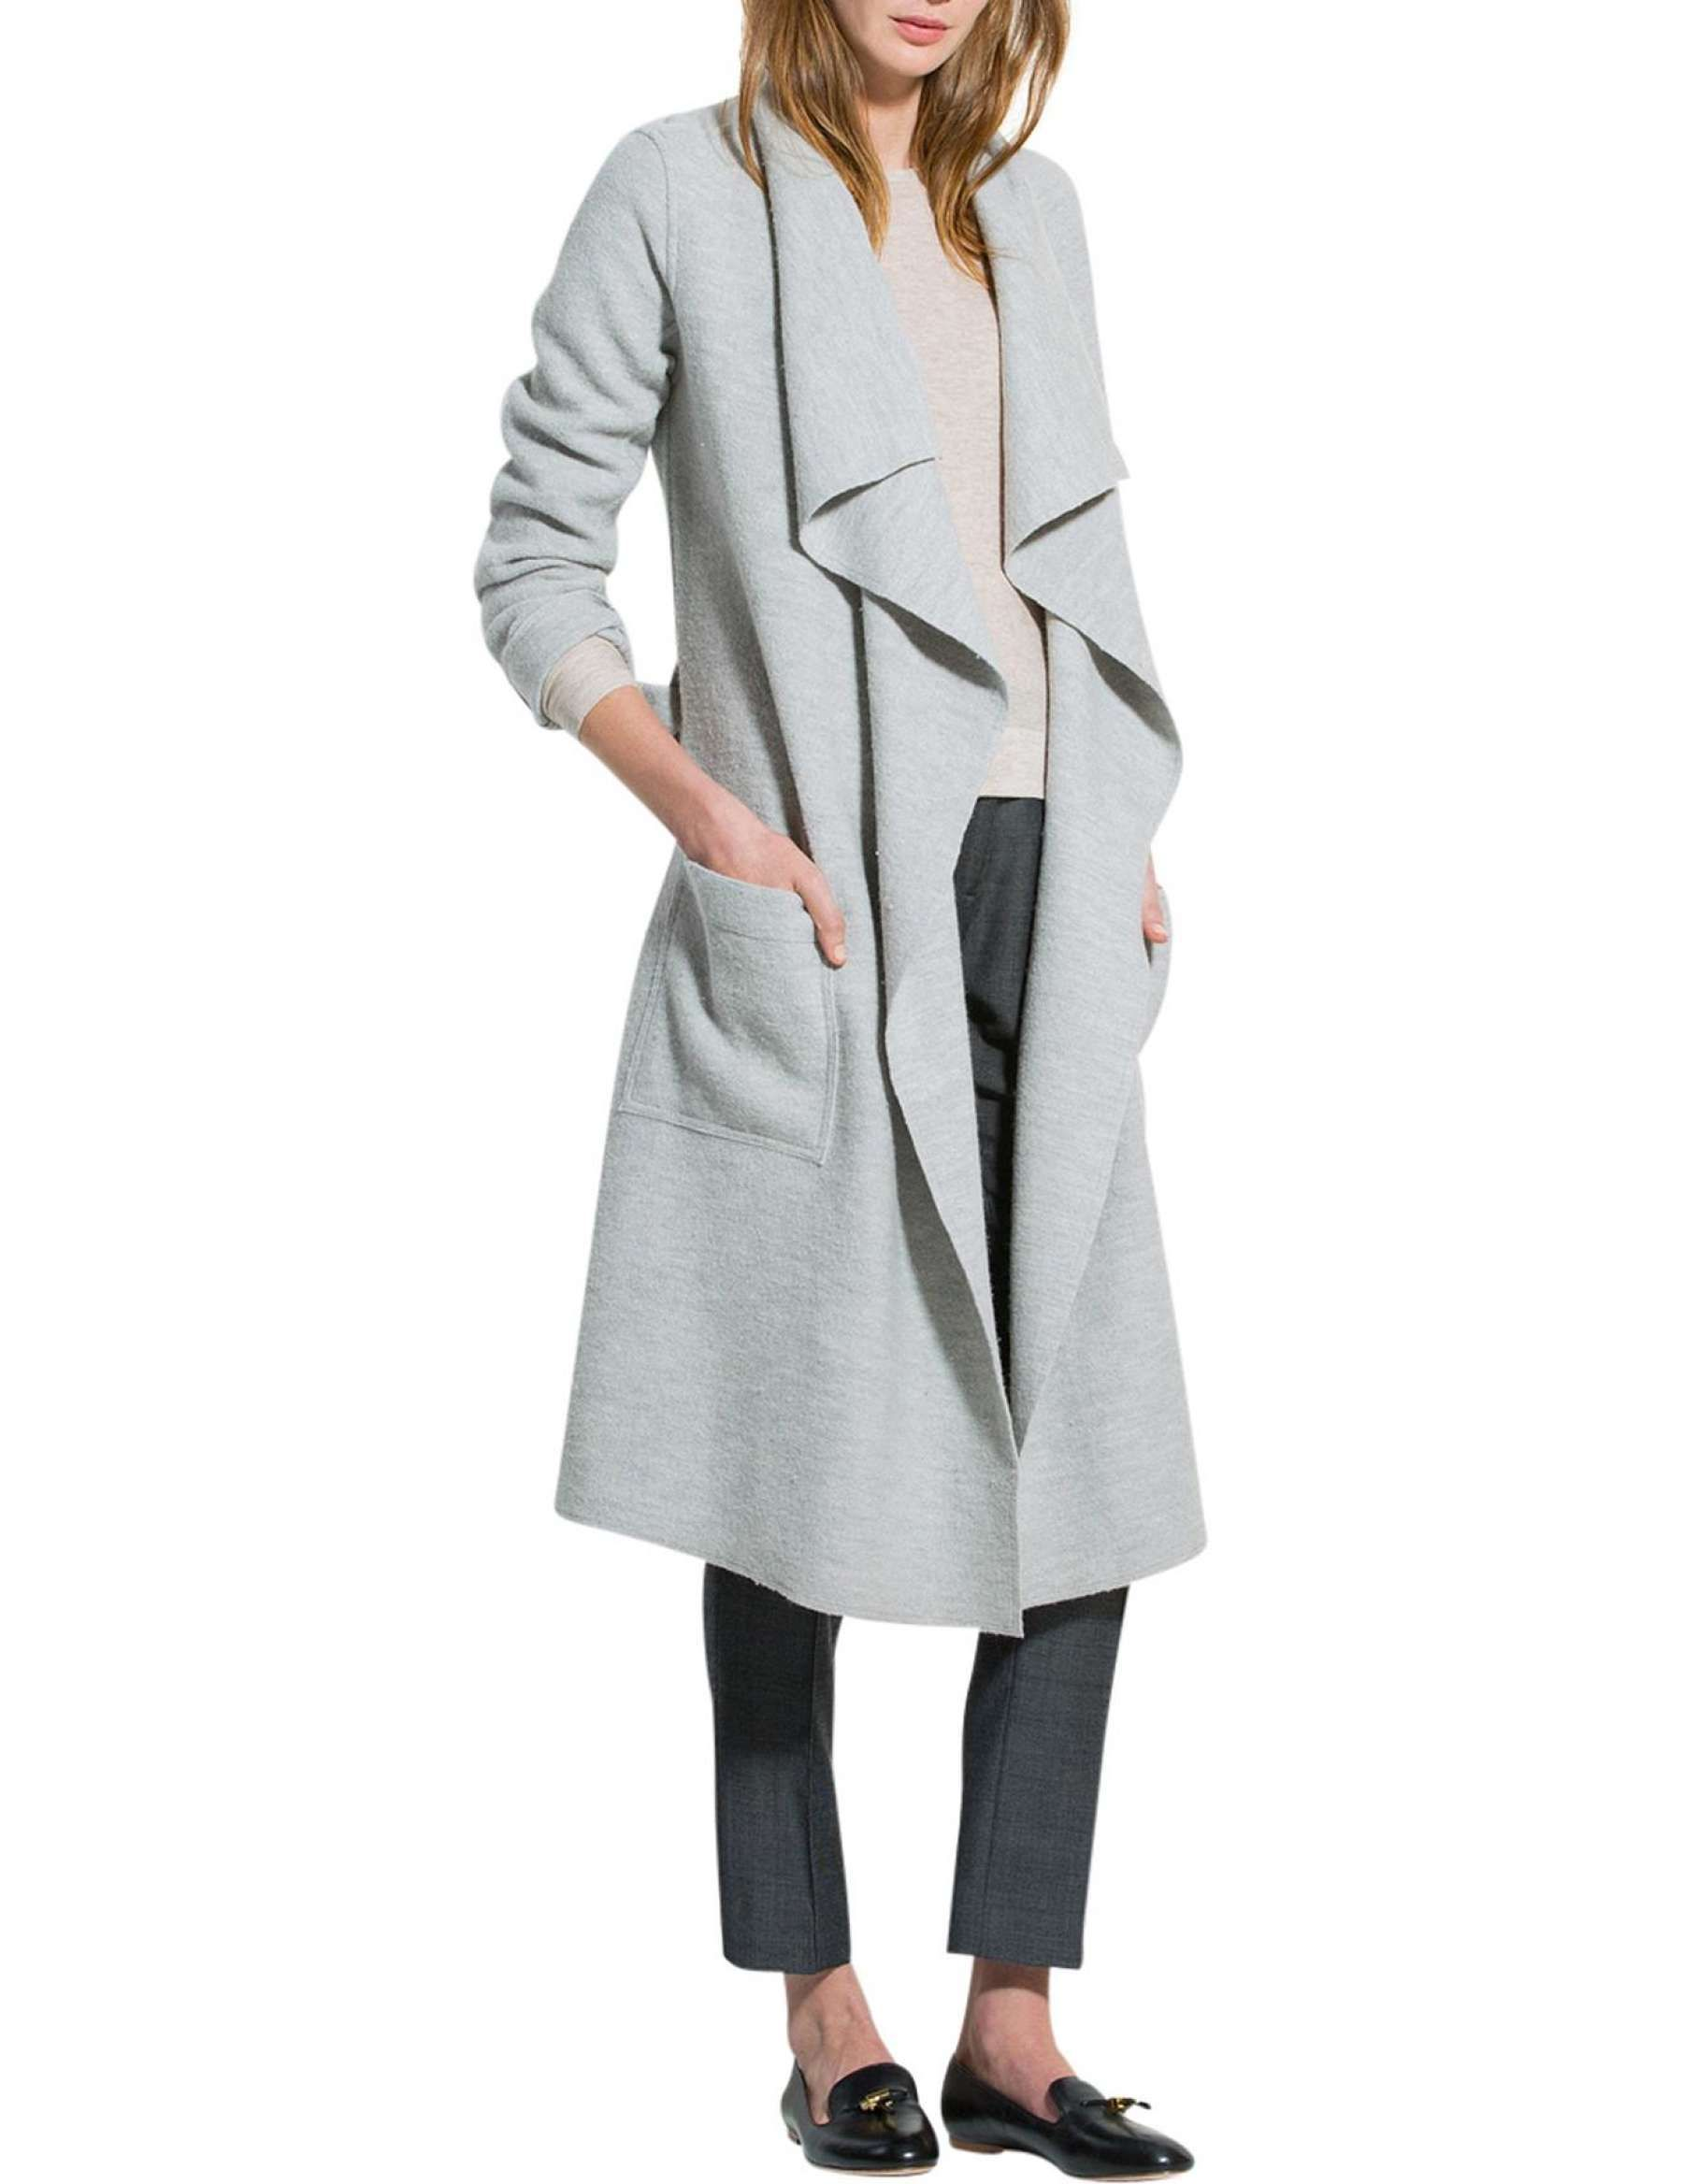 David Jones Trenery Boiled Wool Coat Boiled wool coat